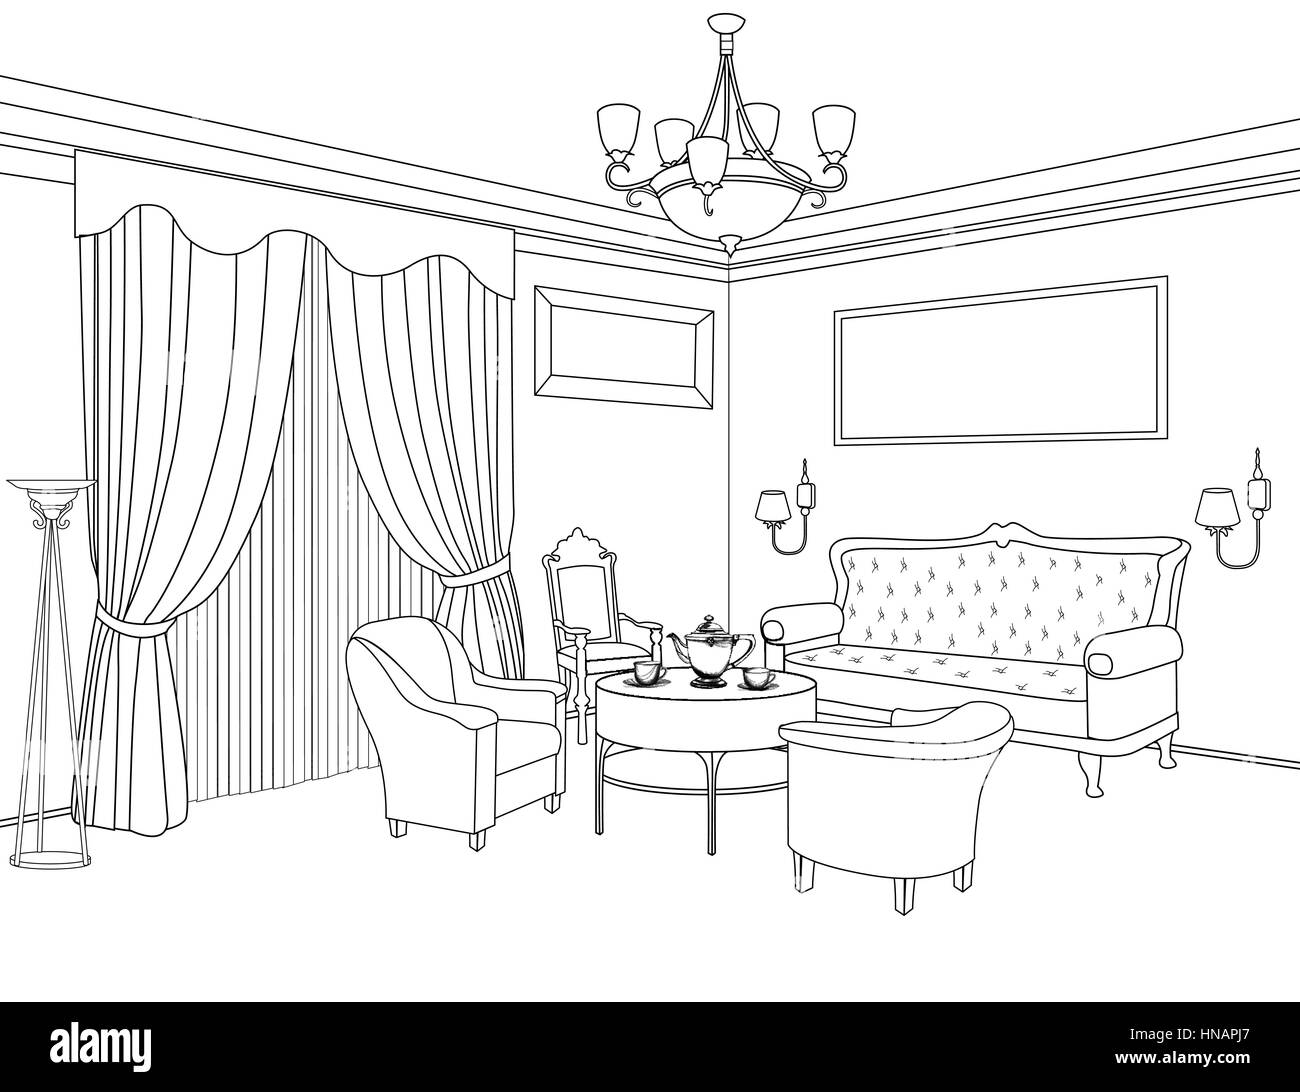 Interior outline sketch furniture blueprint for Drawing room interior design photos